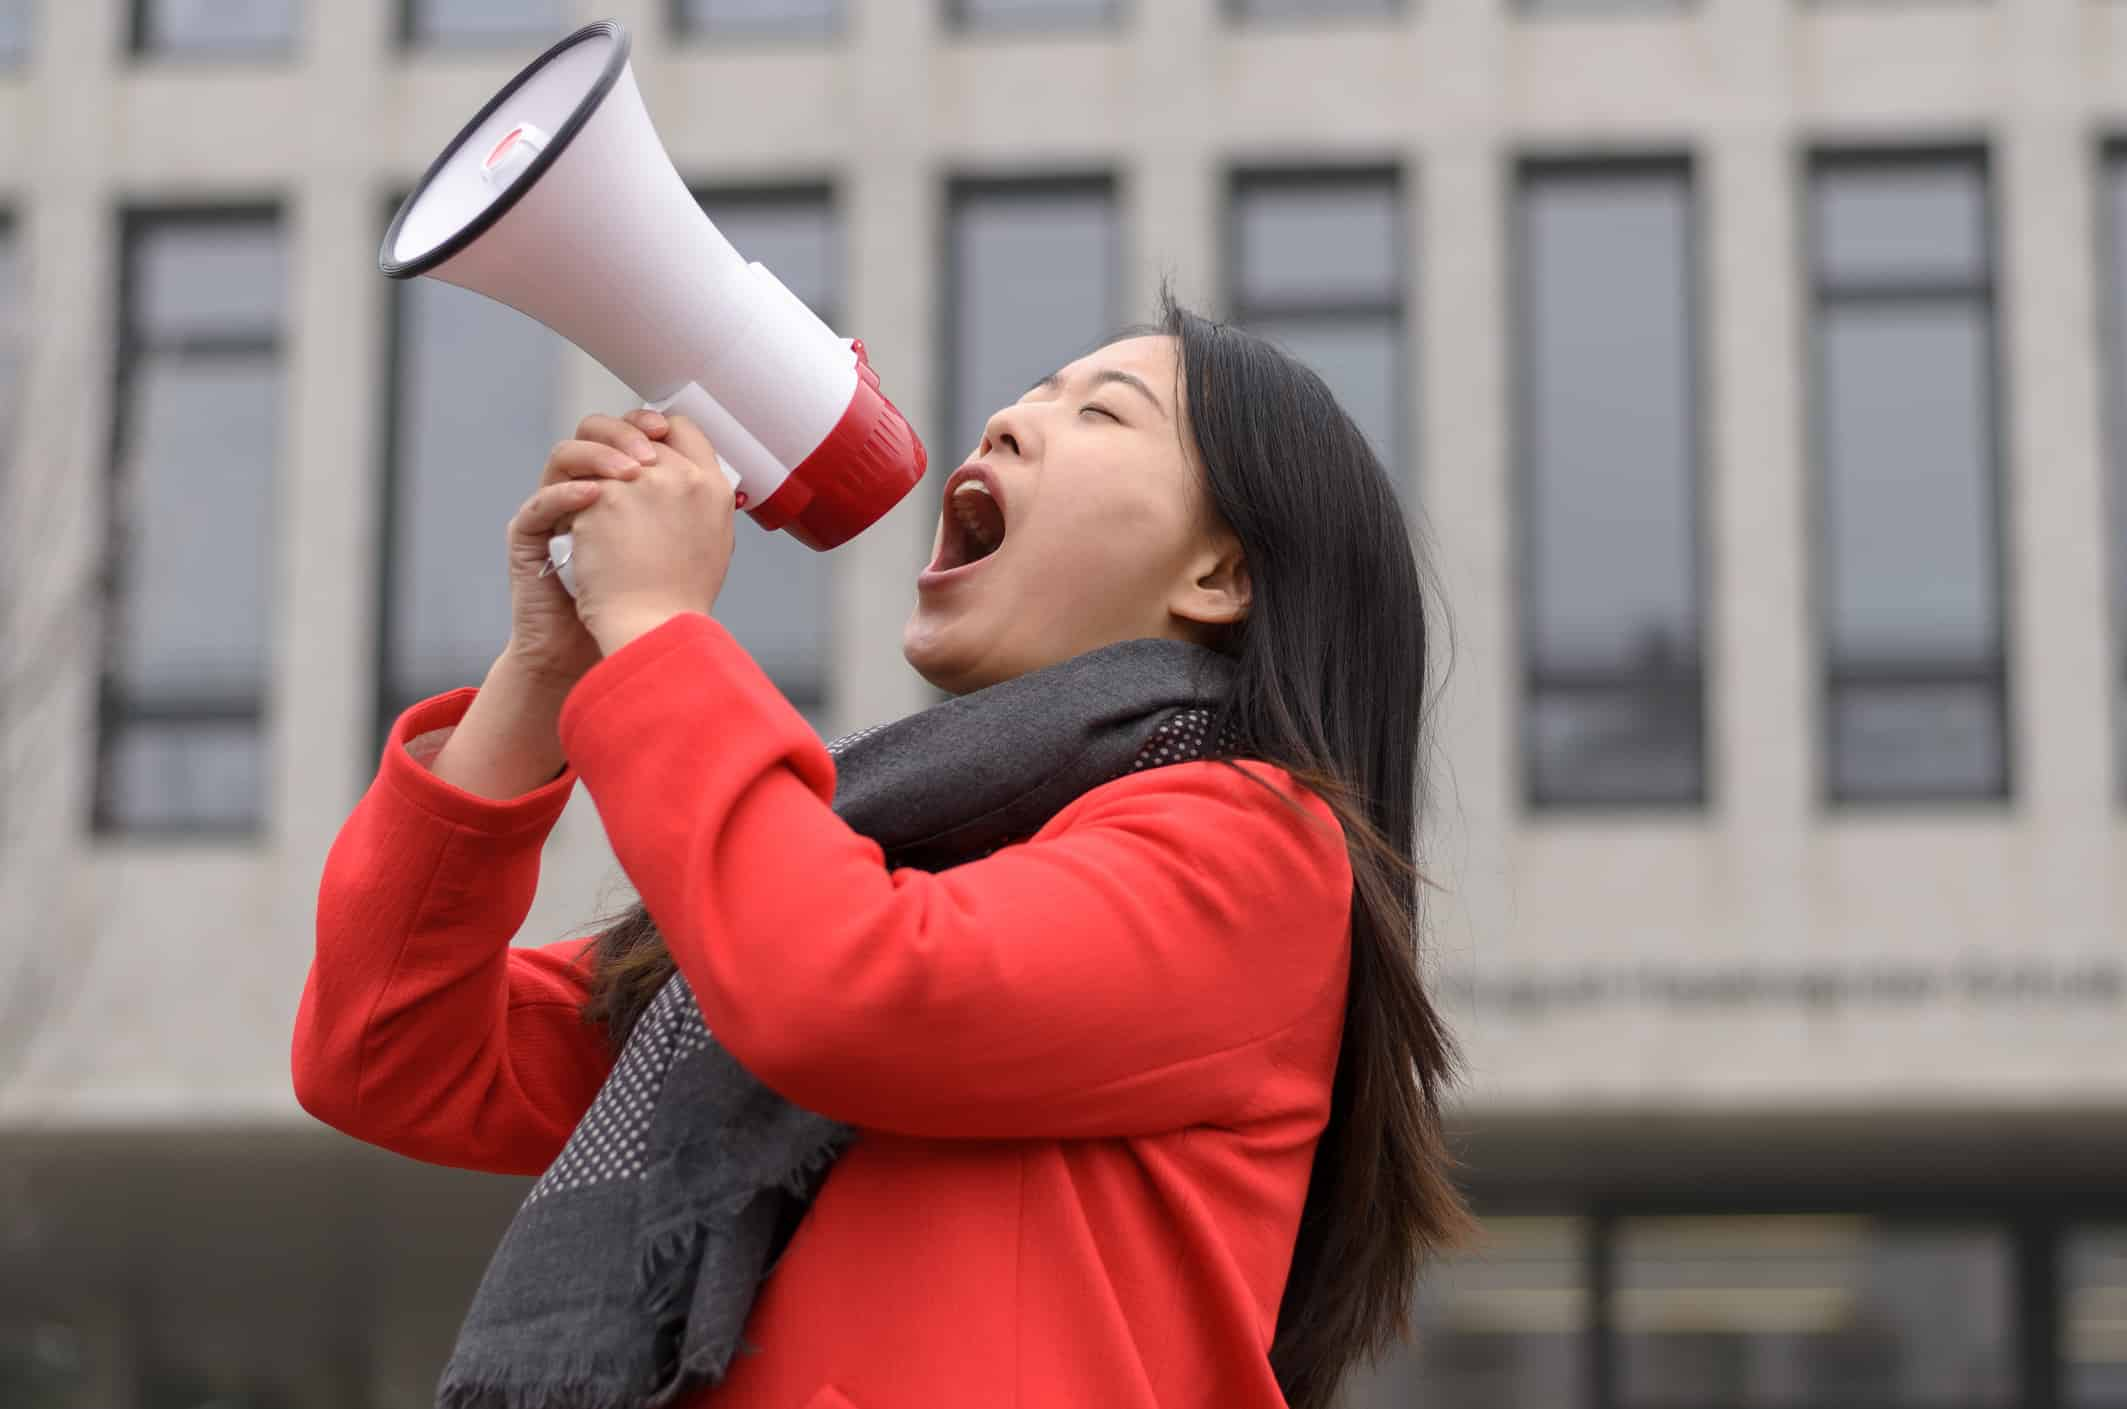 Asian woman in red coat shouting into megaphone.